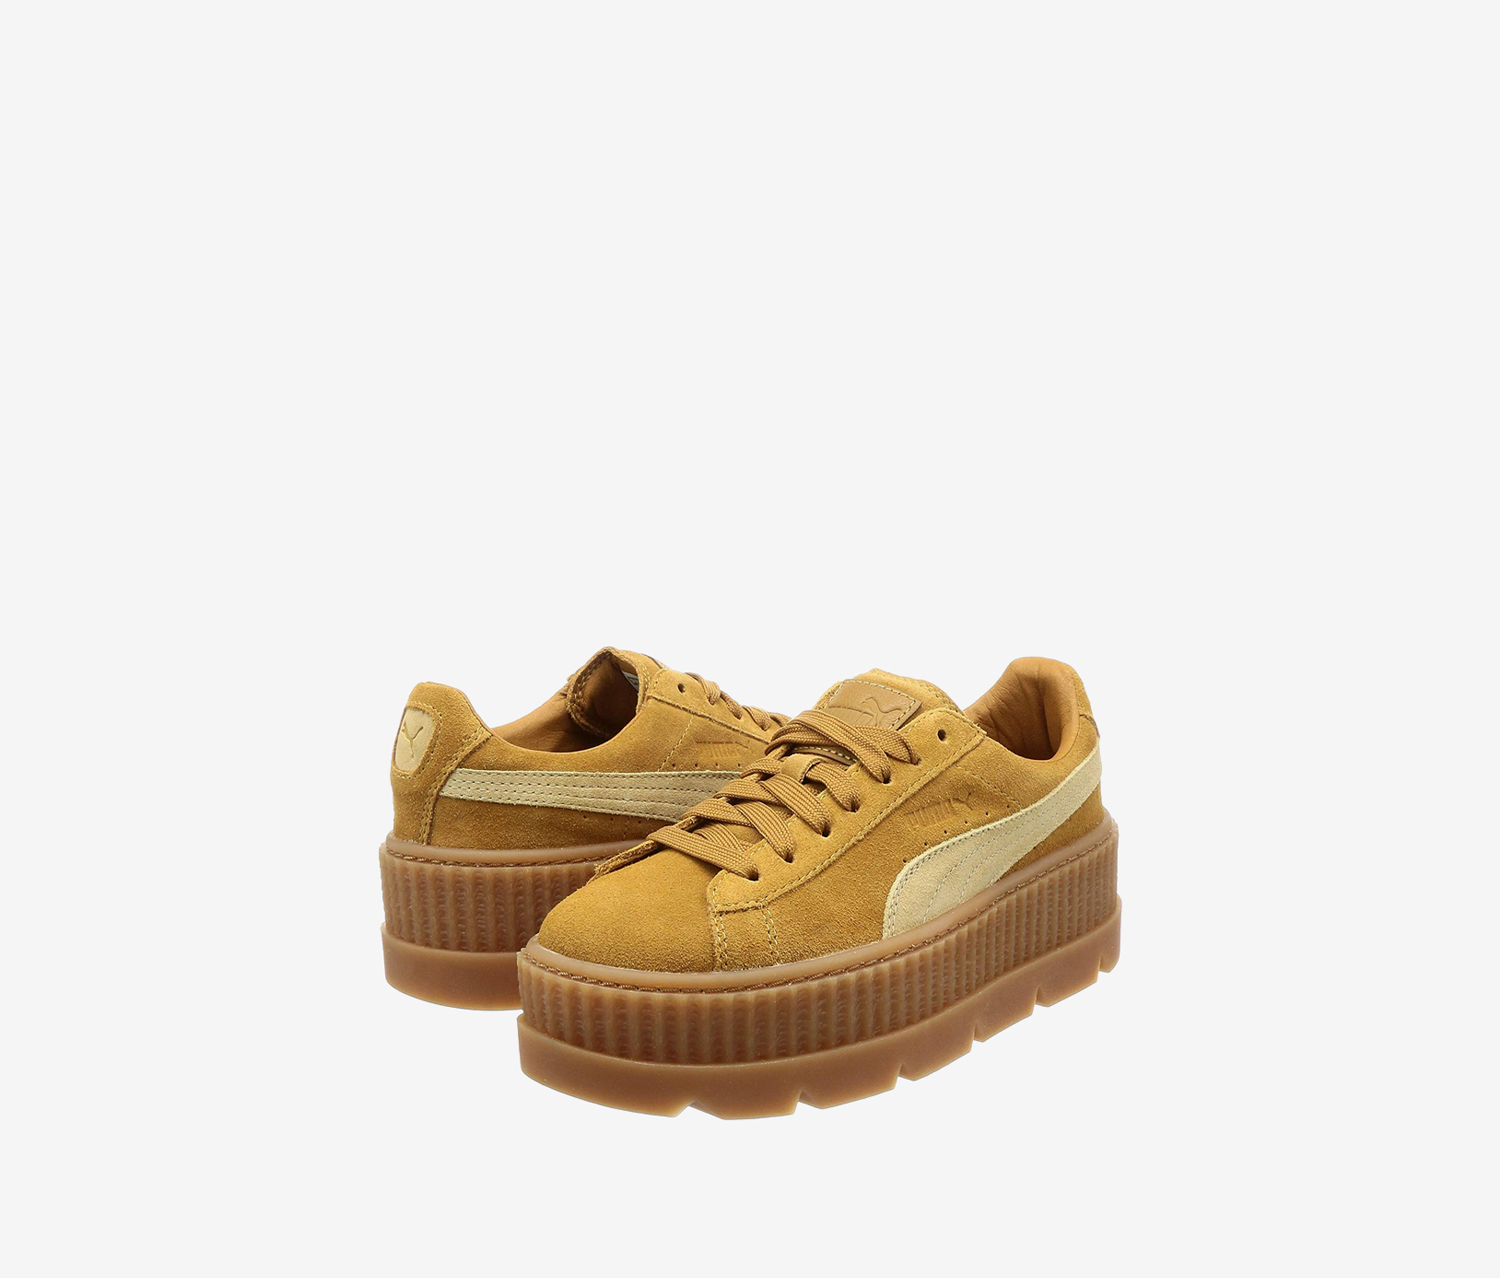 Puma Women's Cleated Creeper Suede, Golden Brown